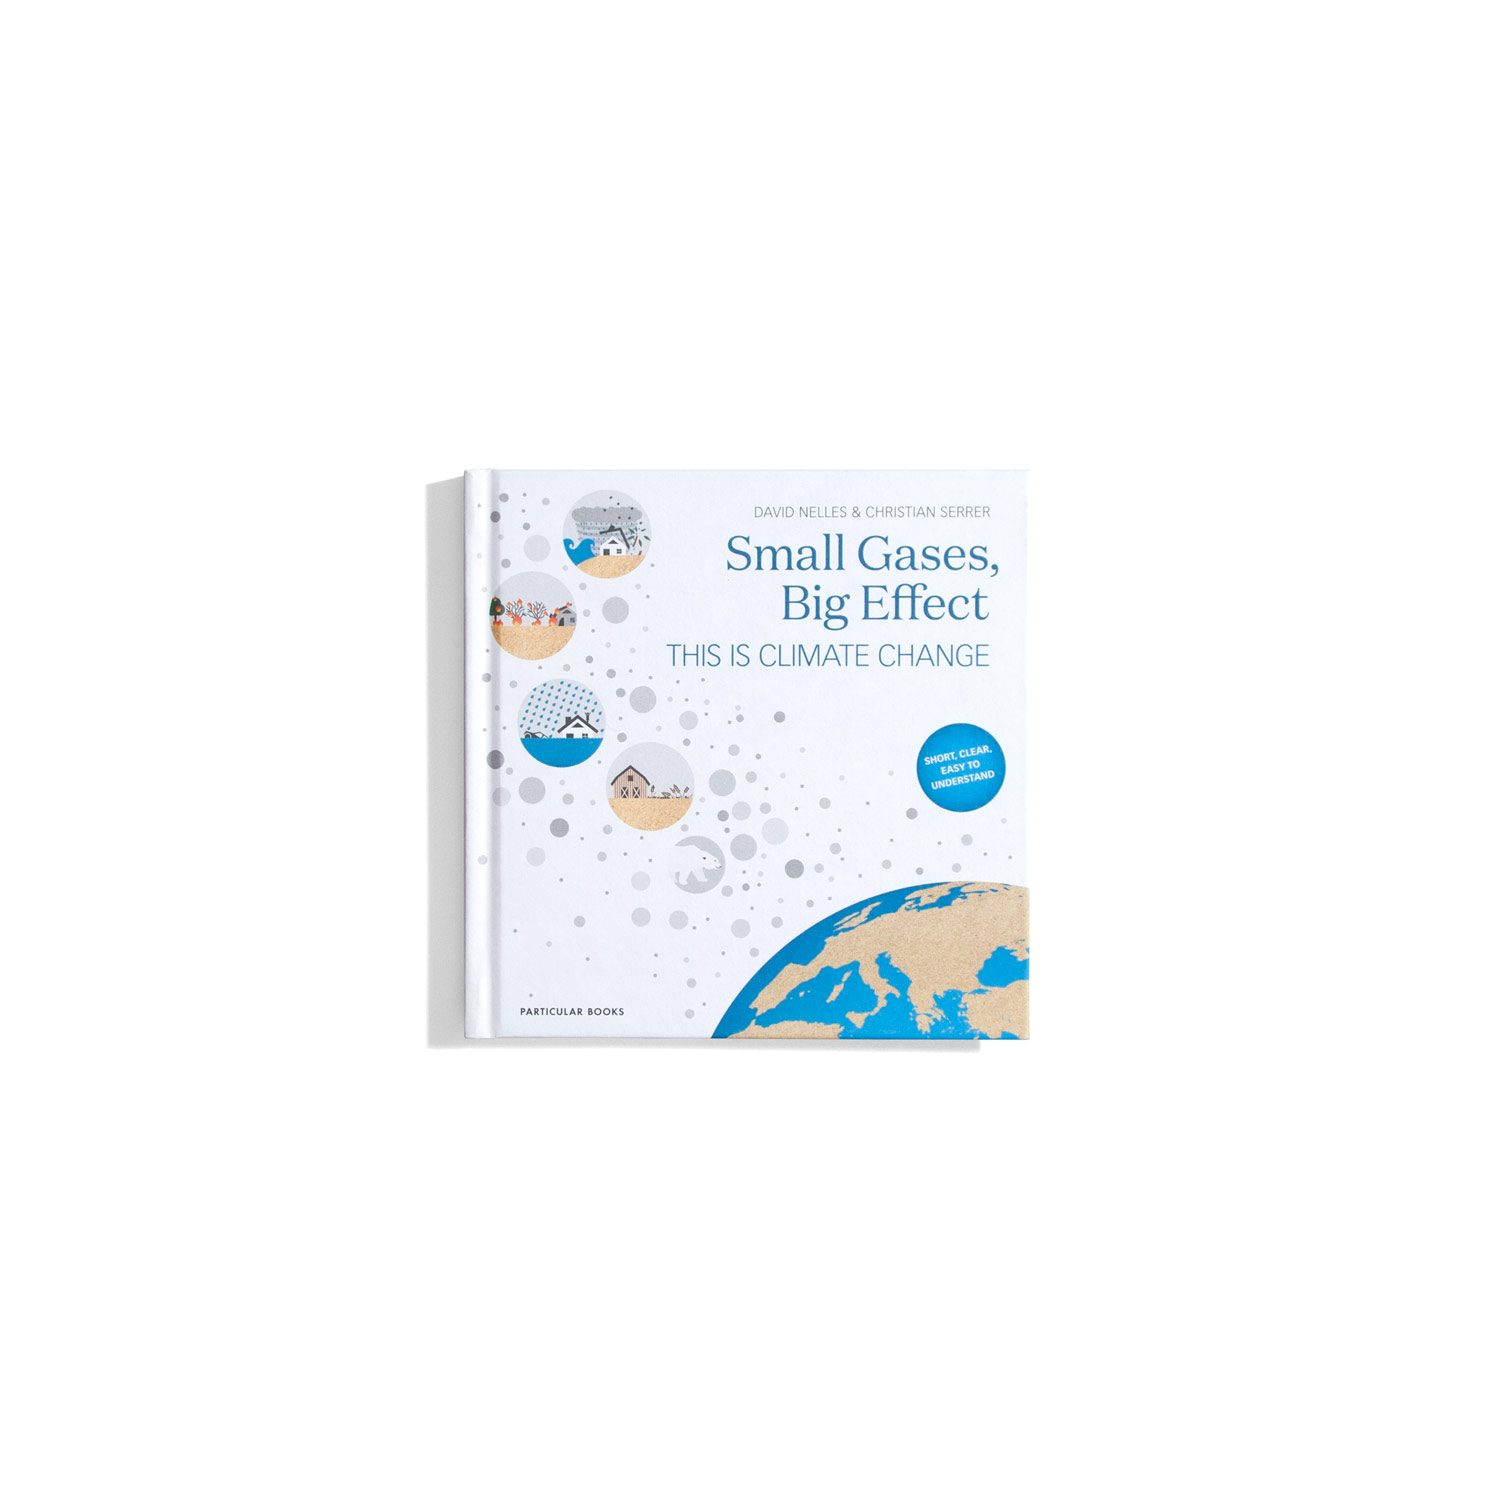 Small Gases